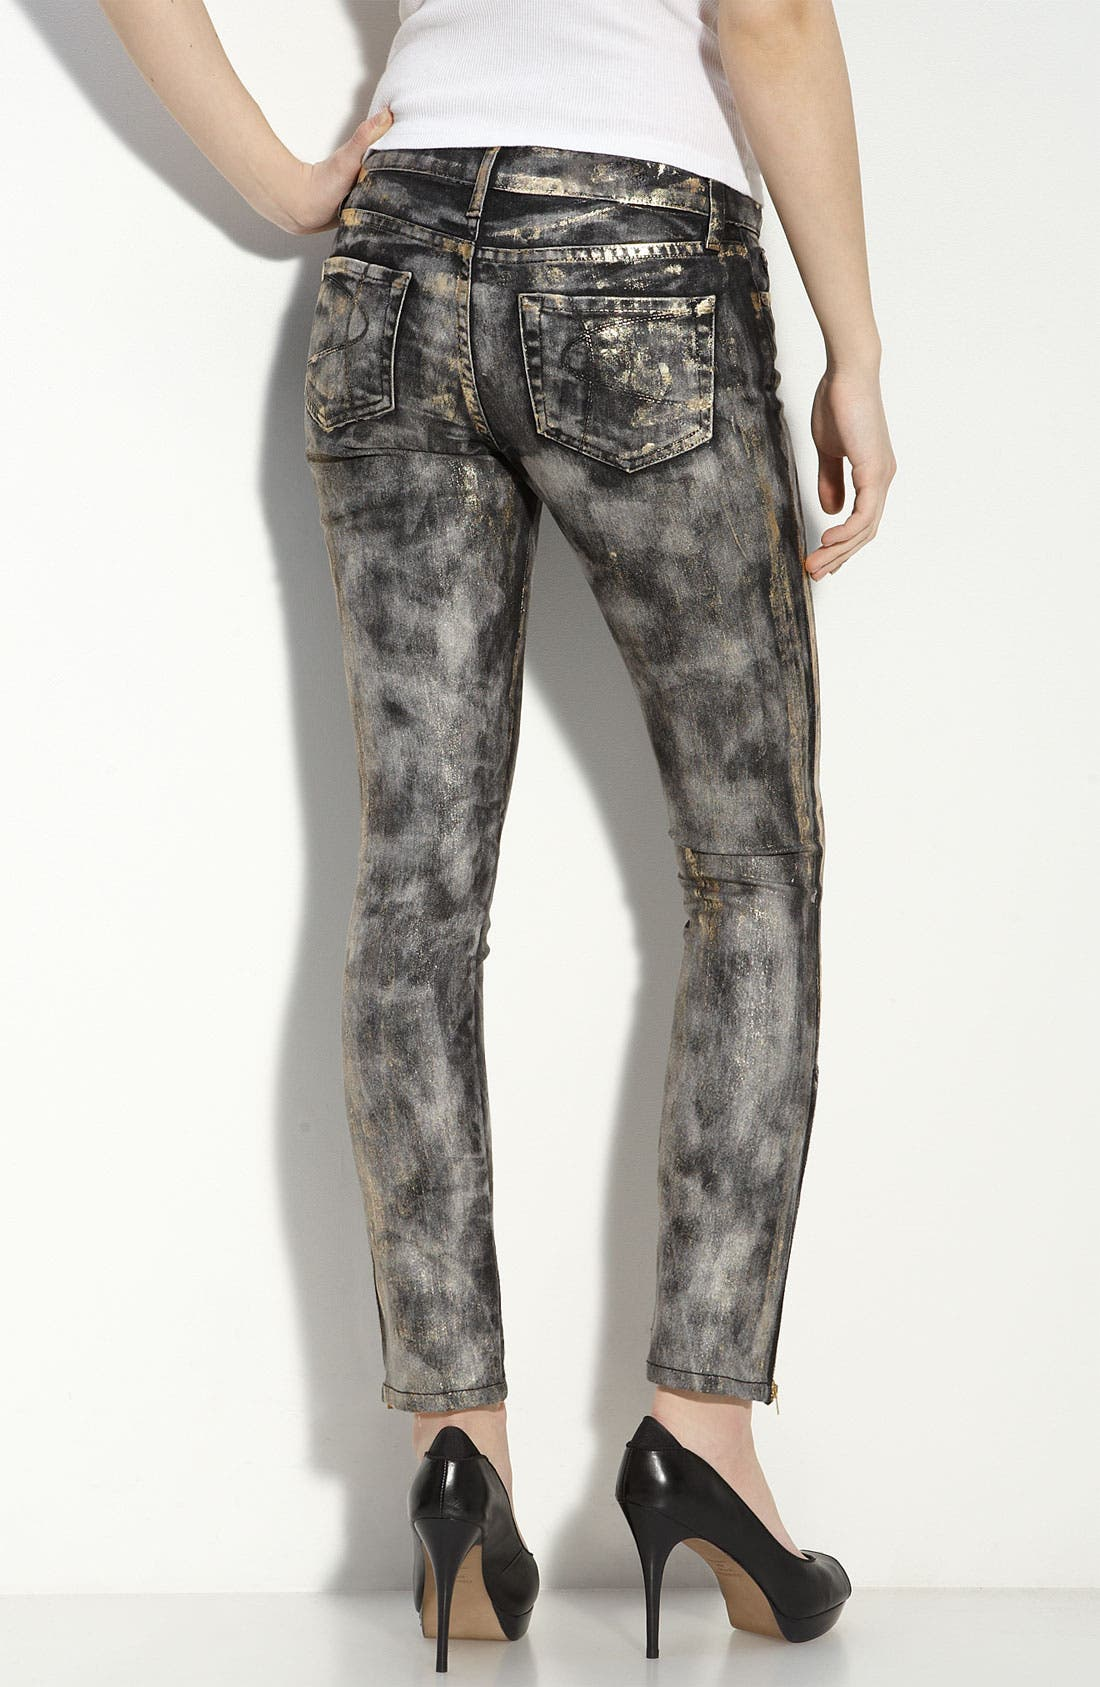 Alternate Image 1 Selected - David Kahn Jeans 'Nikki' Ankle Jeans